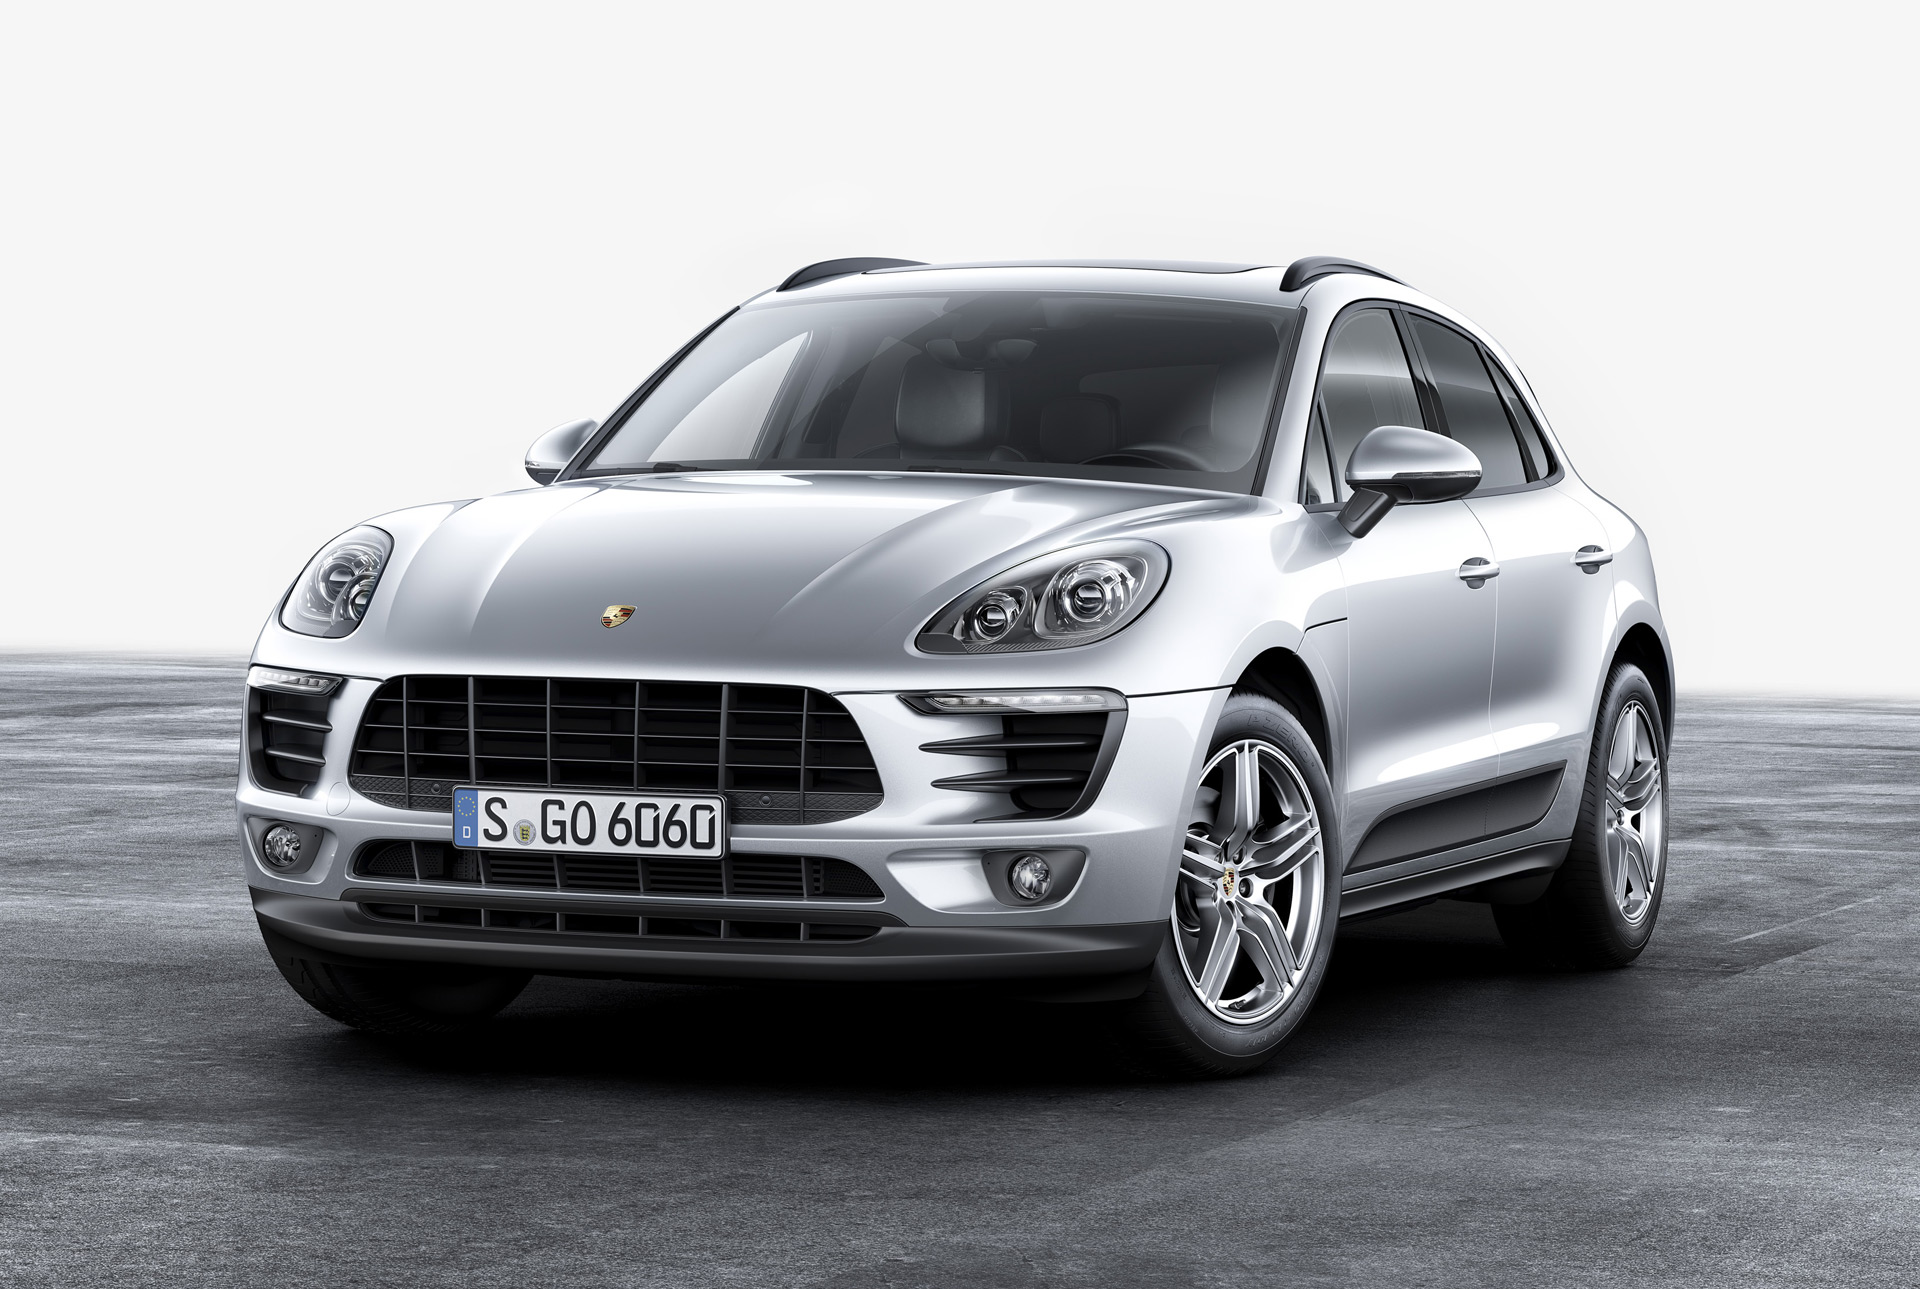 2017 Porsche Macan Gets 4 Cylinder Base Option 48 550 Starting Price